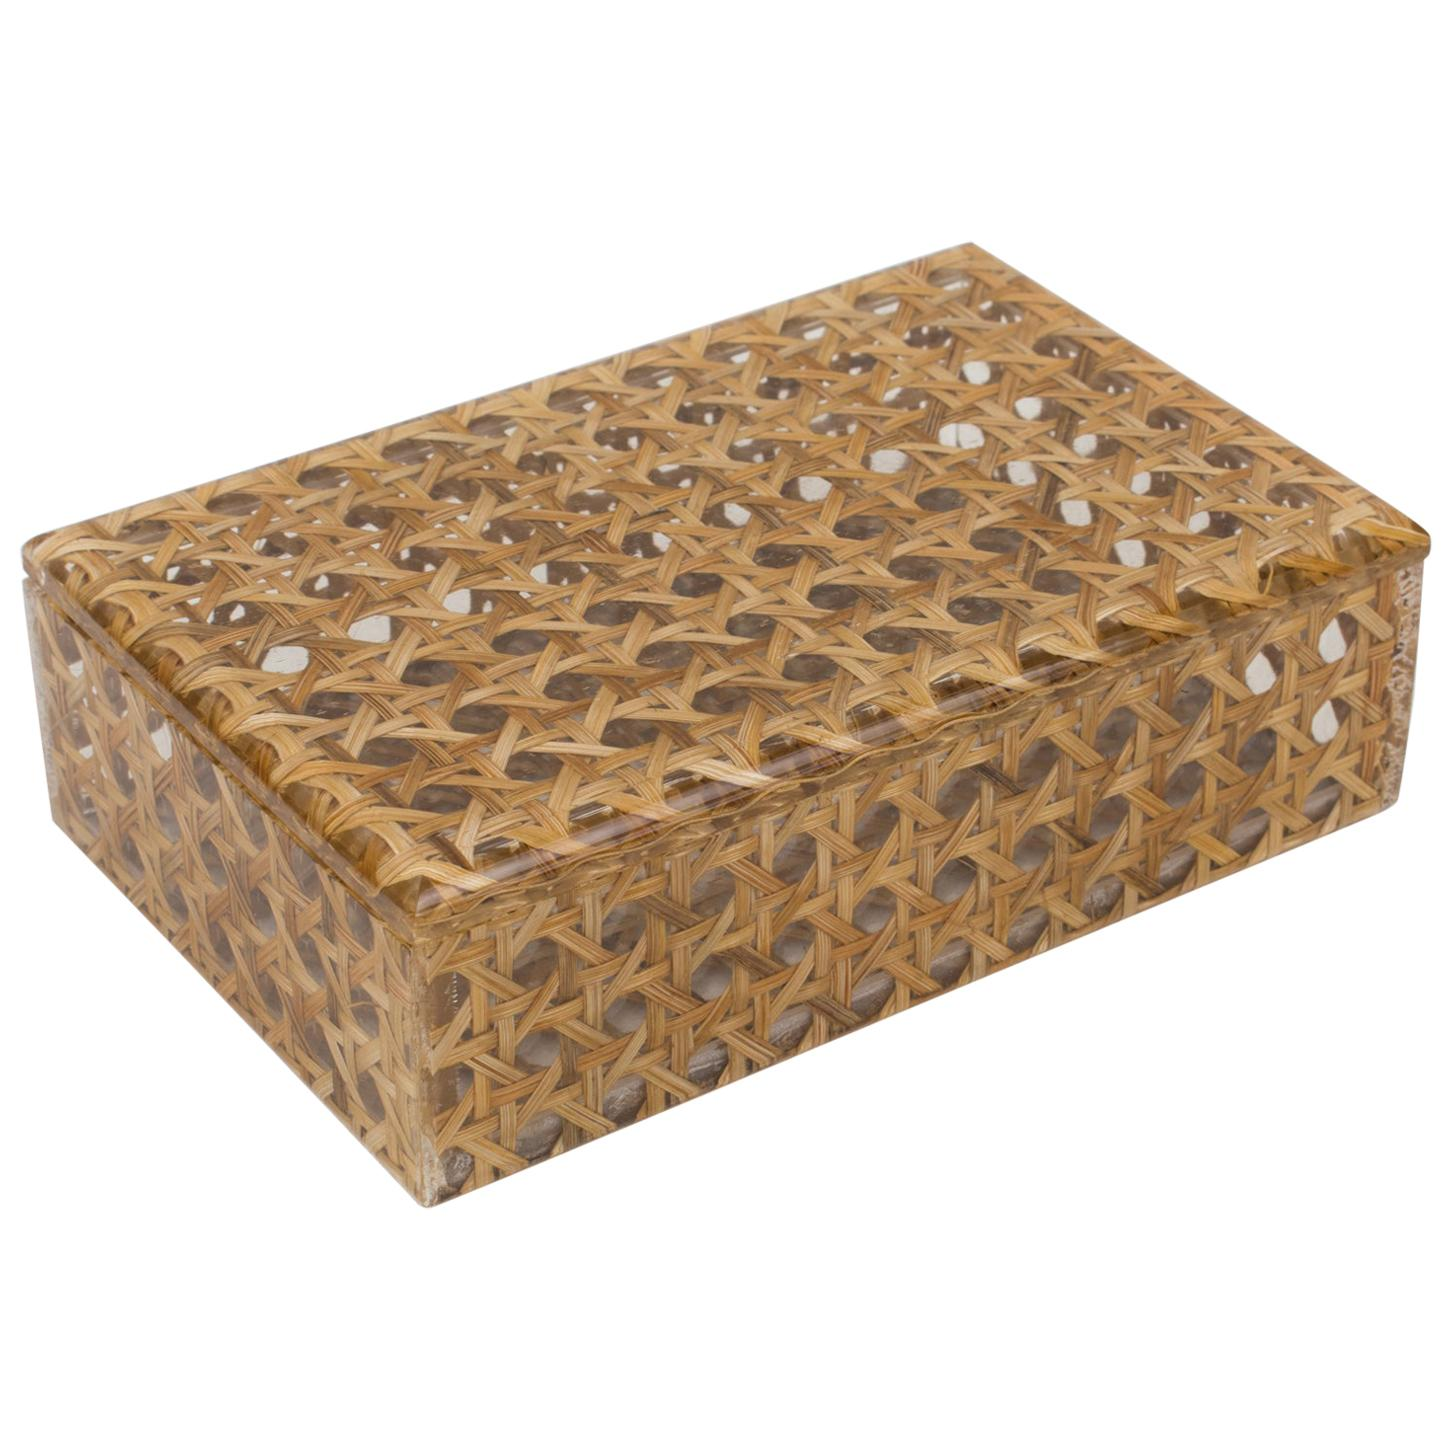 Christian Dior 1970s Lucite and Rattan Box